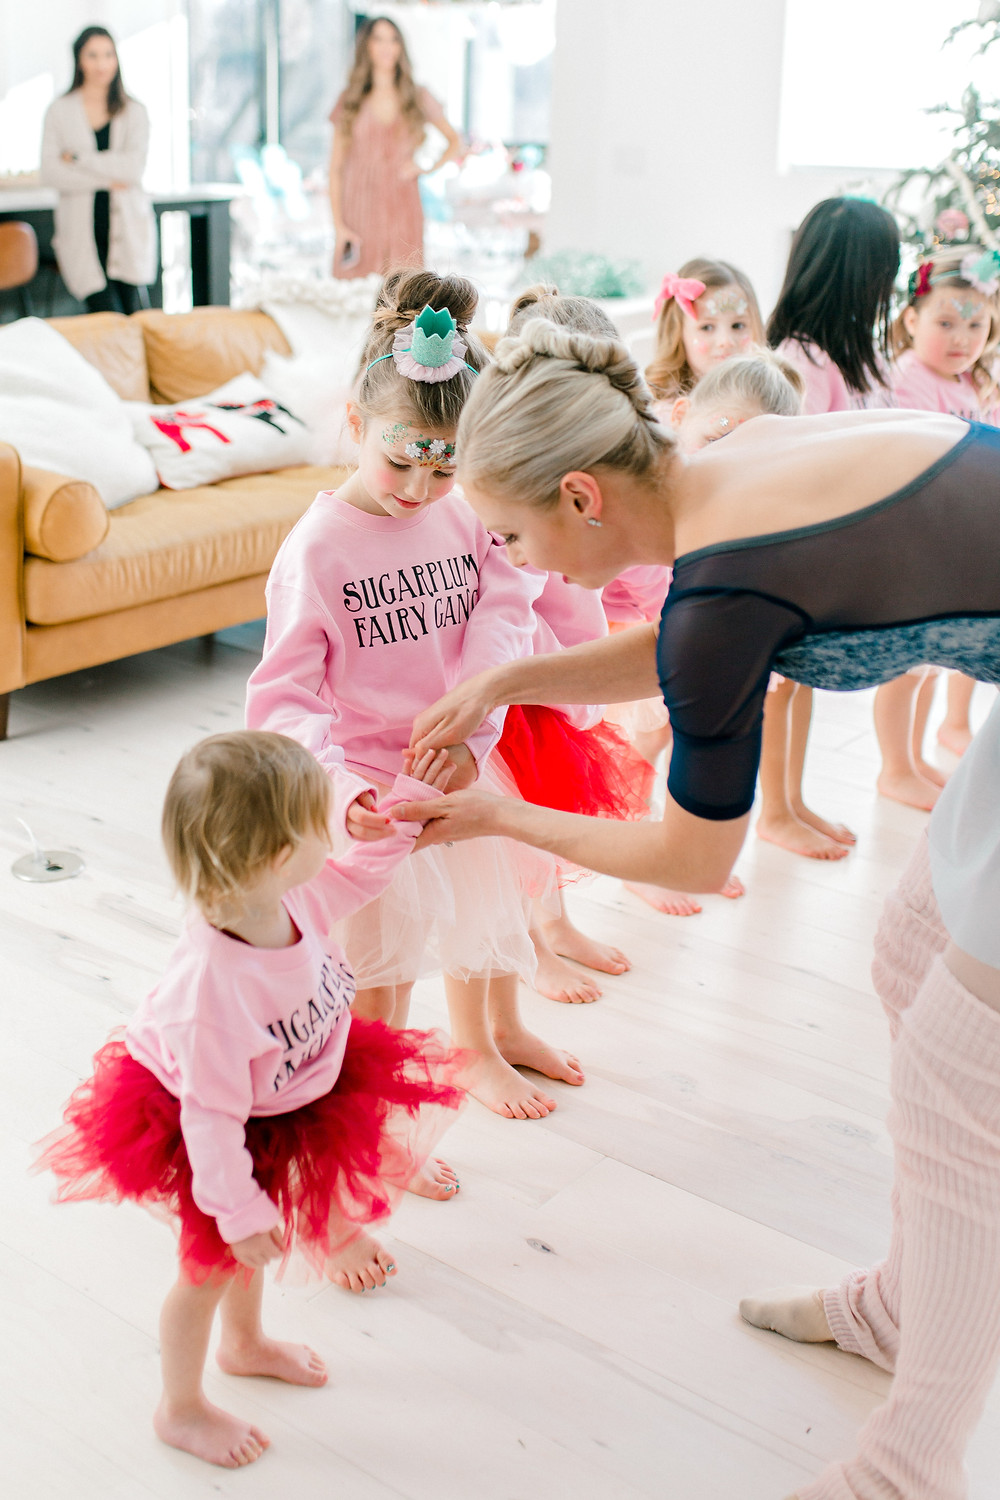 A group of girls at a birthday party are dressed in red, white and pink tutus dancing as ballerinas in a living room.